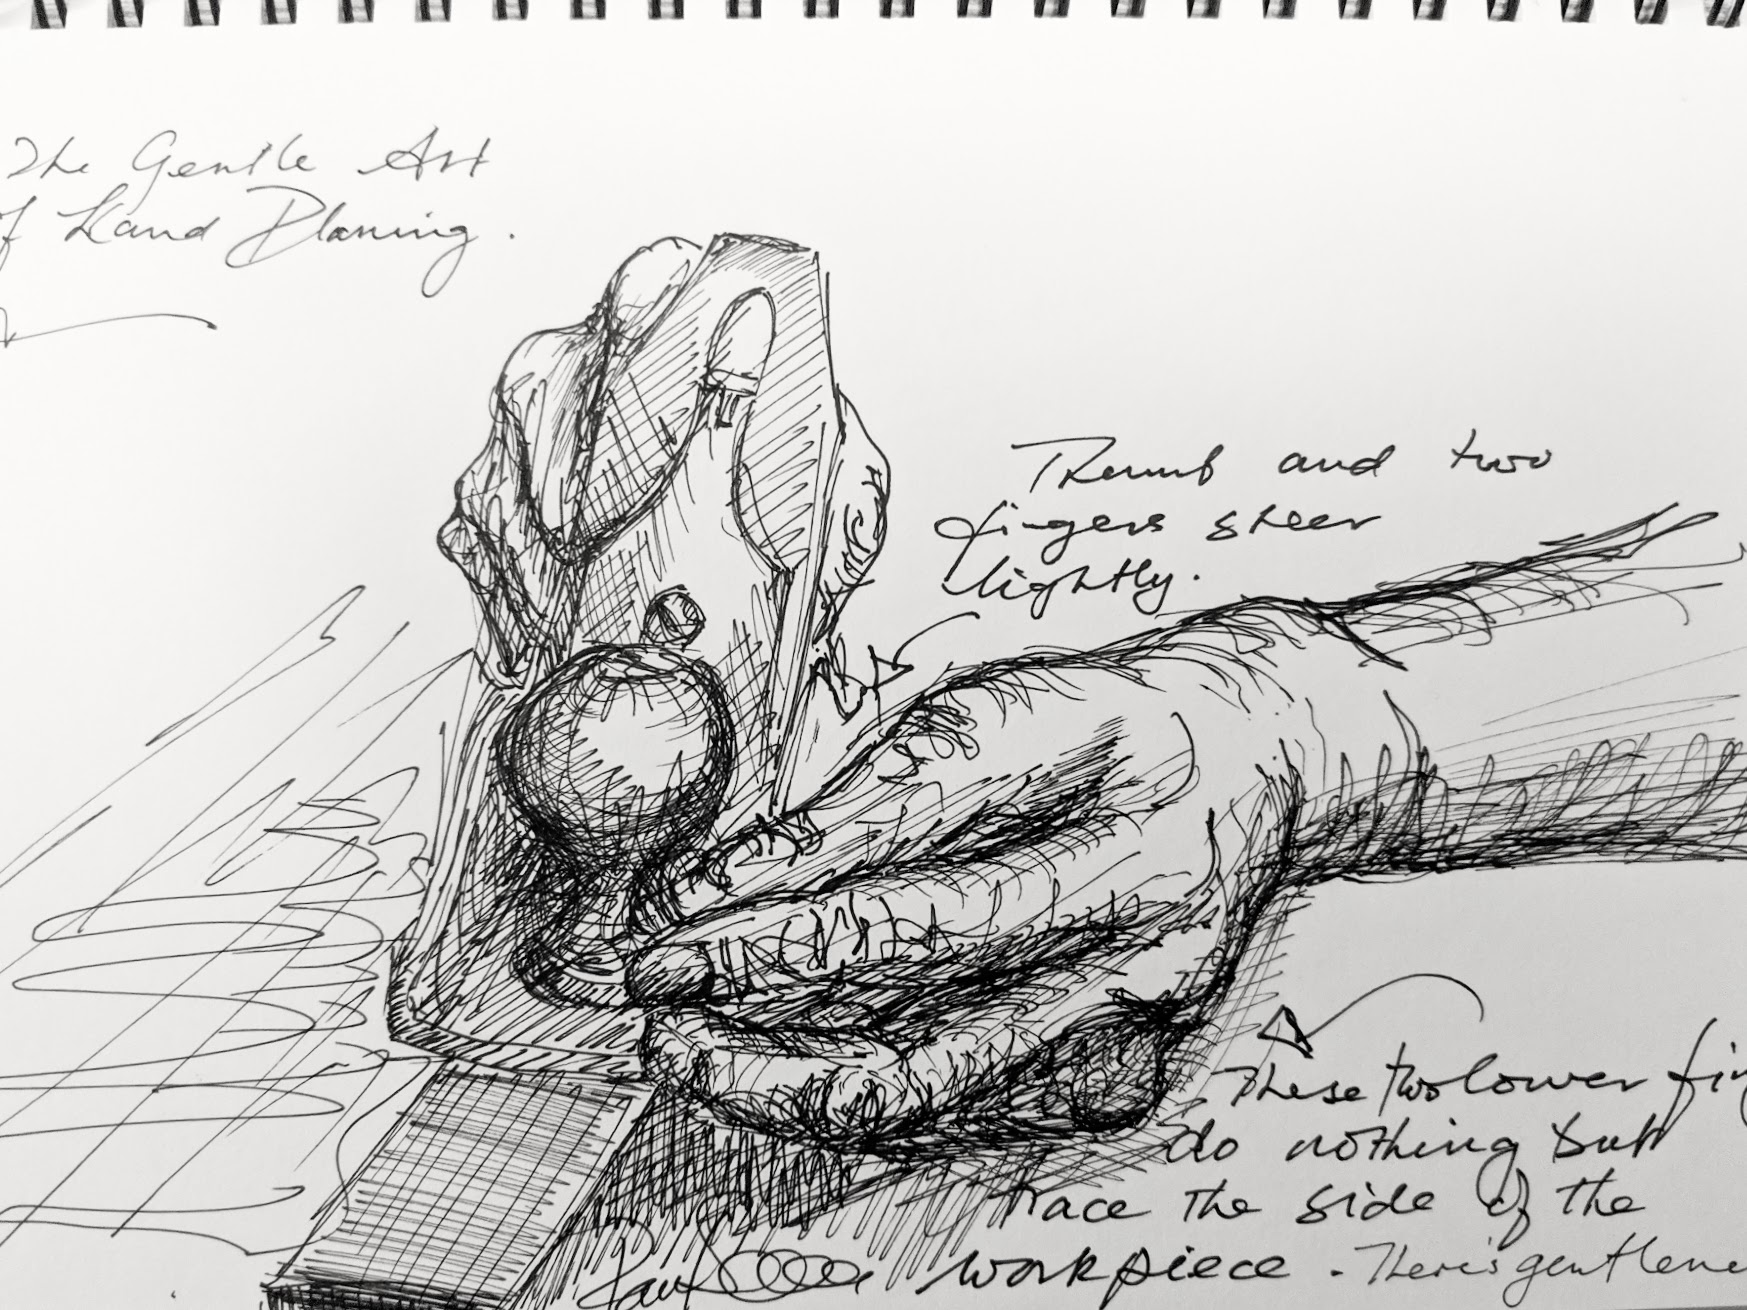 Seeing the Art in Hand Planing—Part II